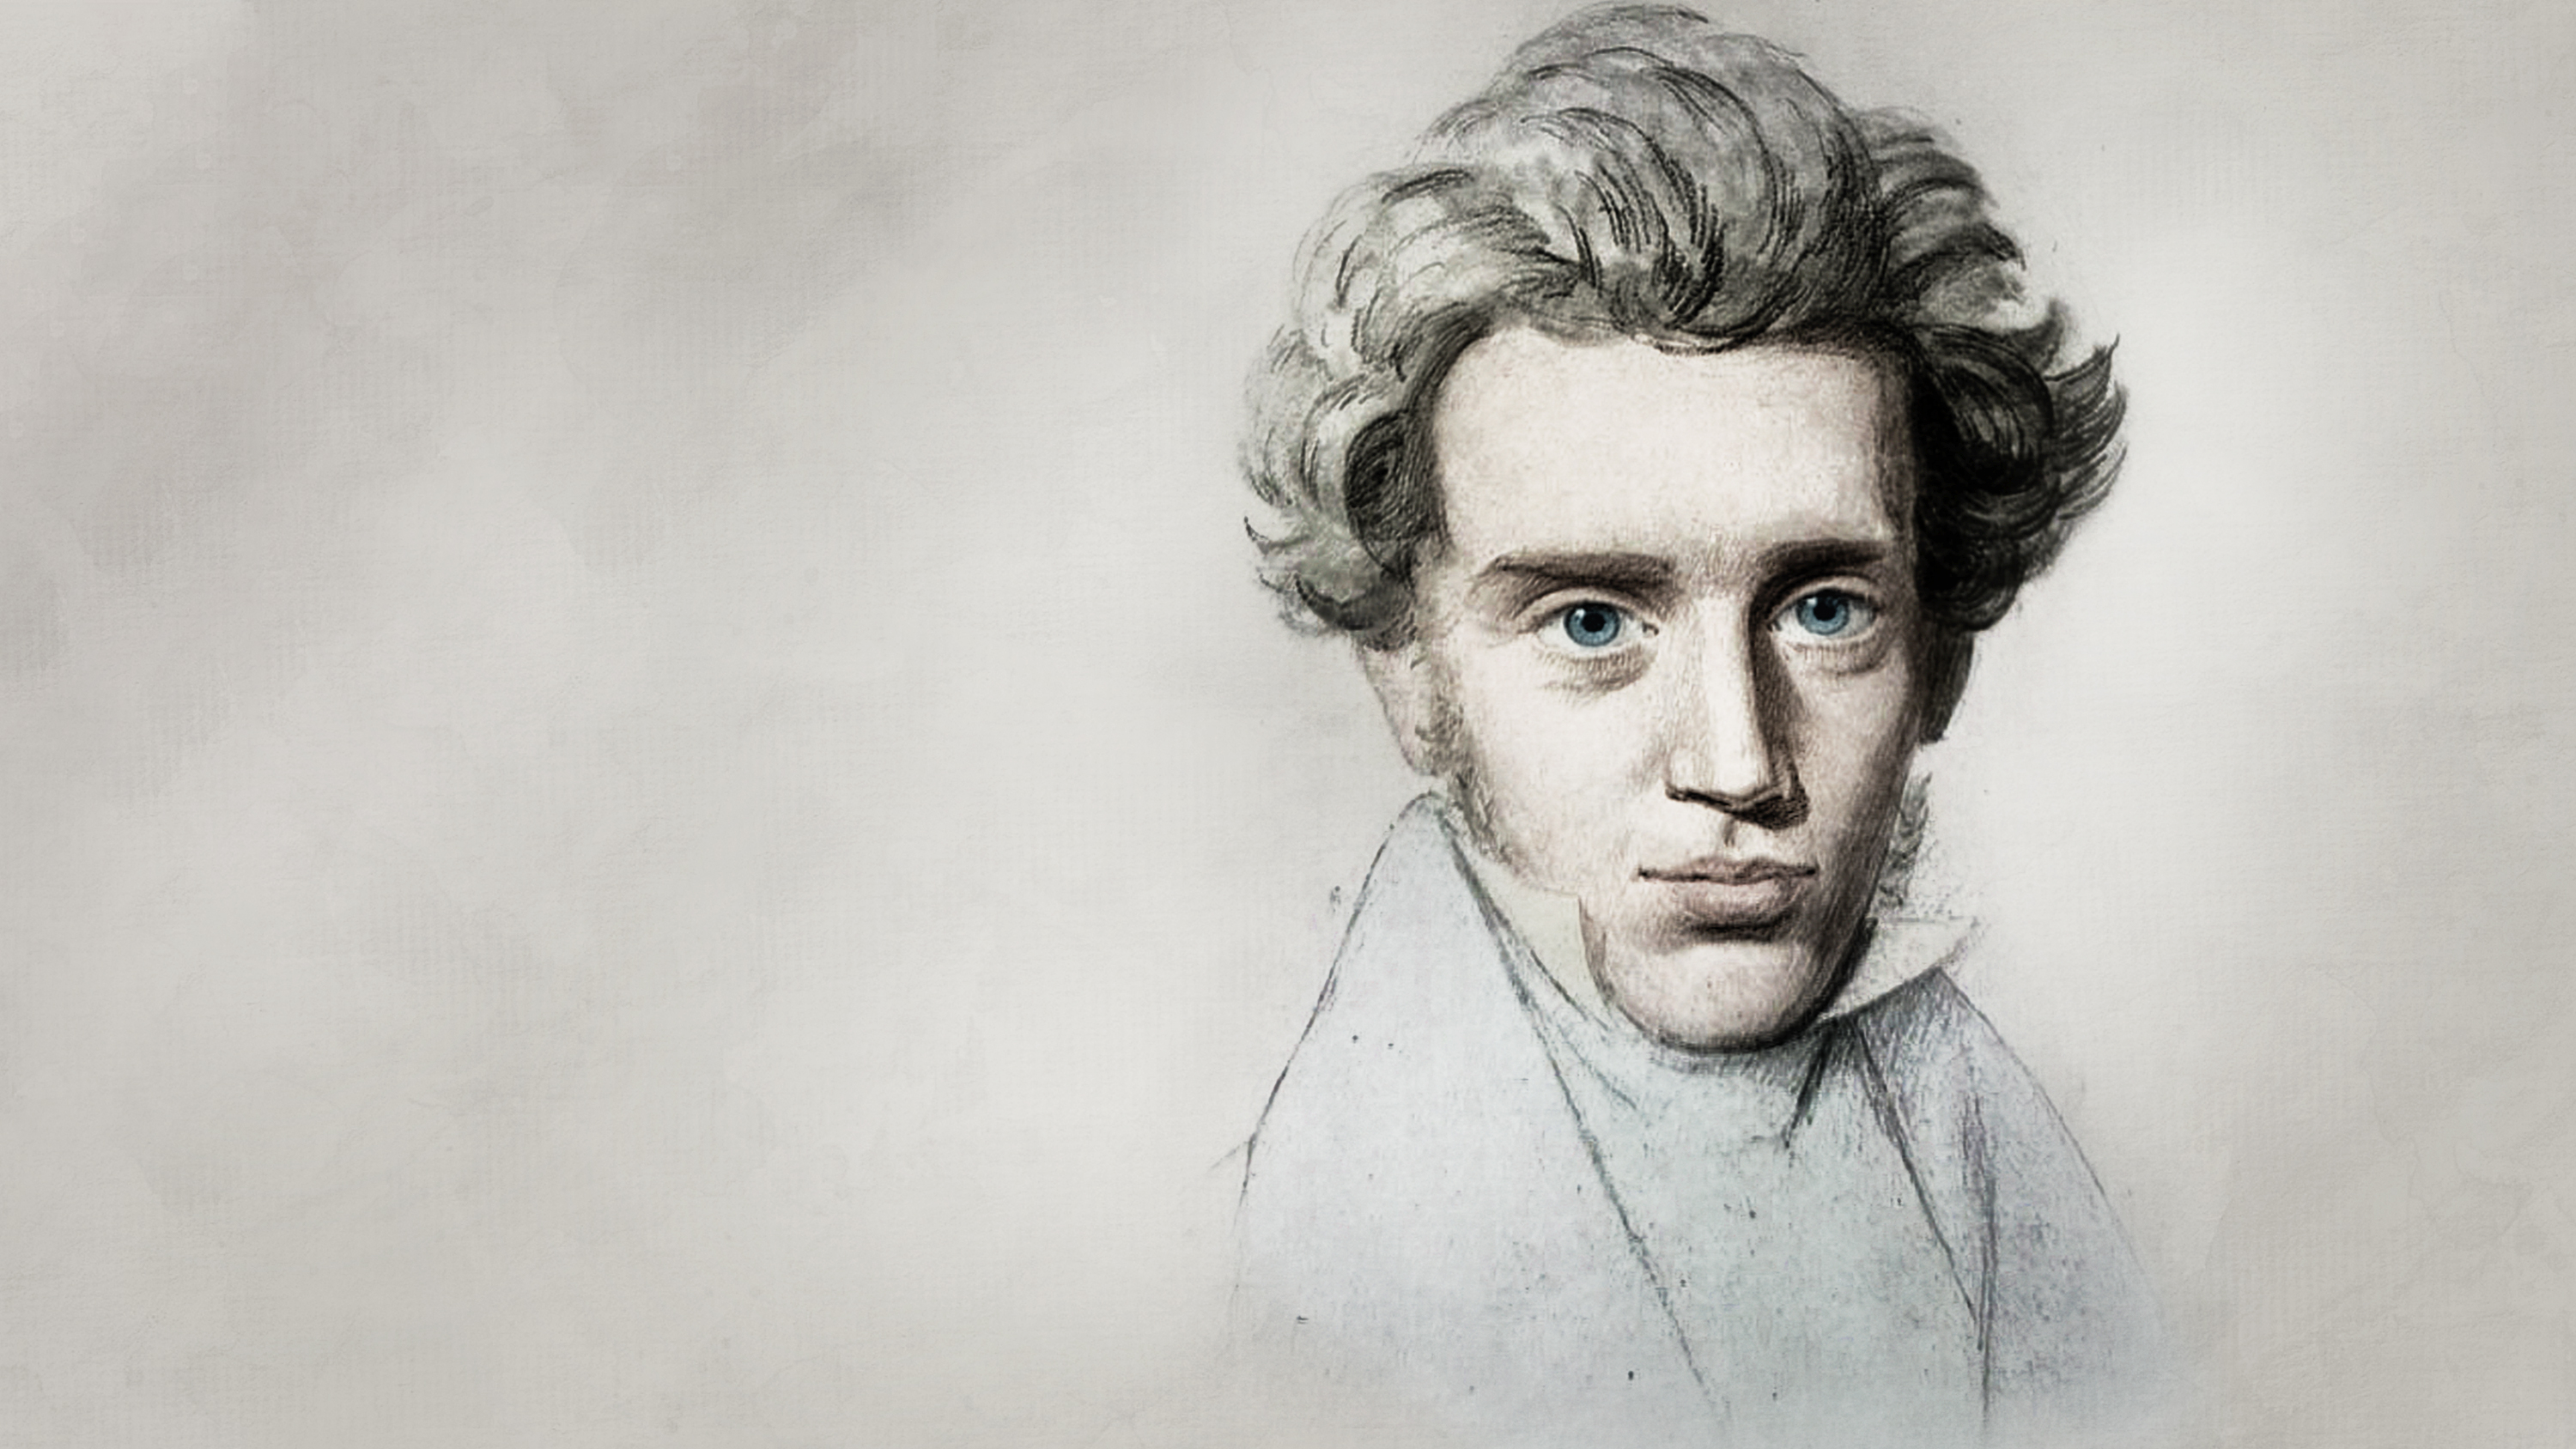 The 'Self-Actualizing' Spirituality of Søren Kierkegaard | Christianity  Today